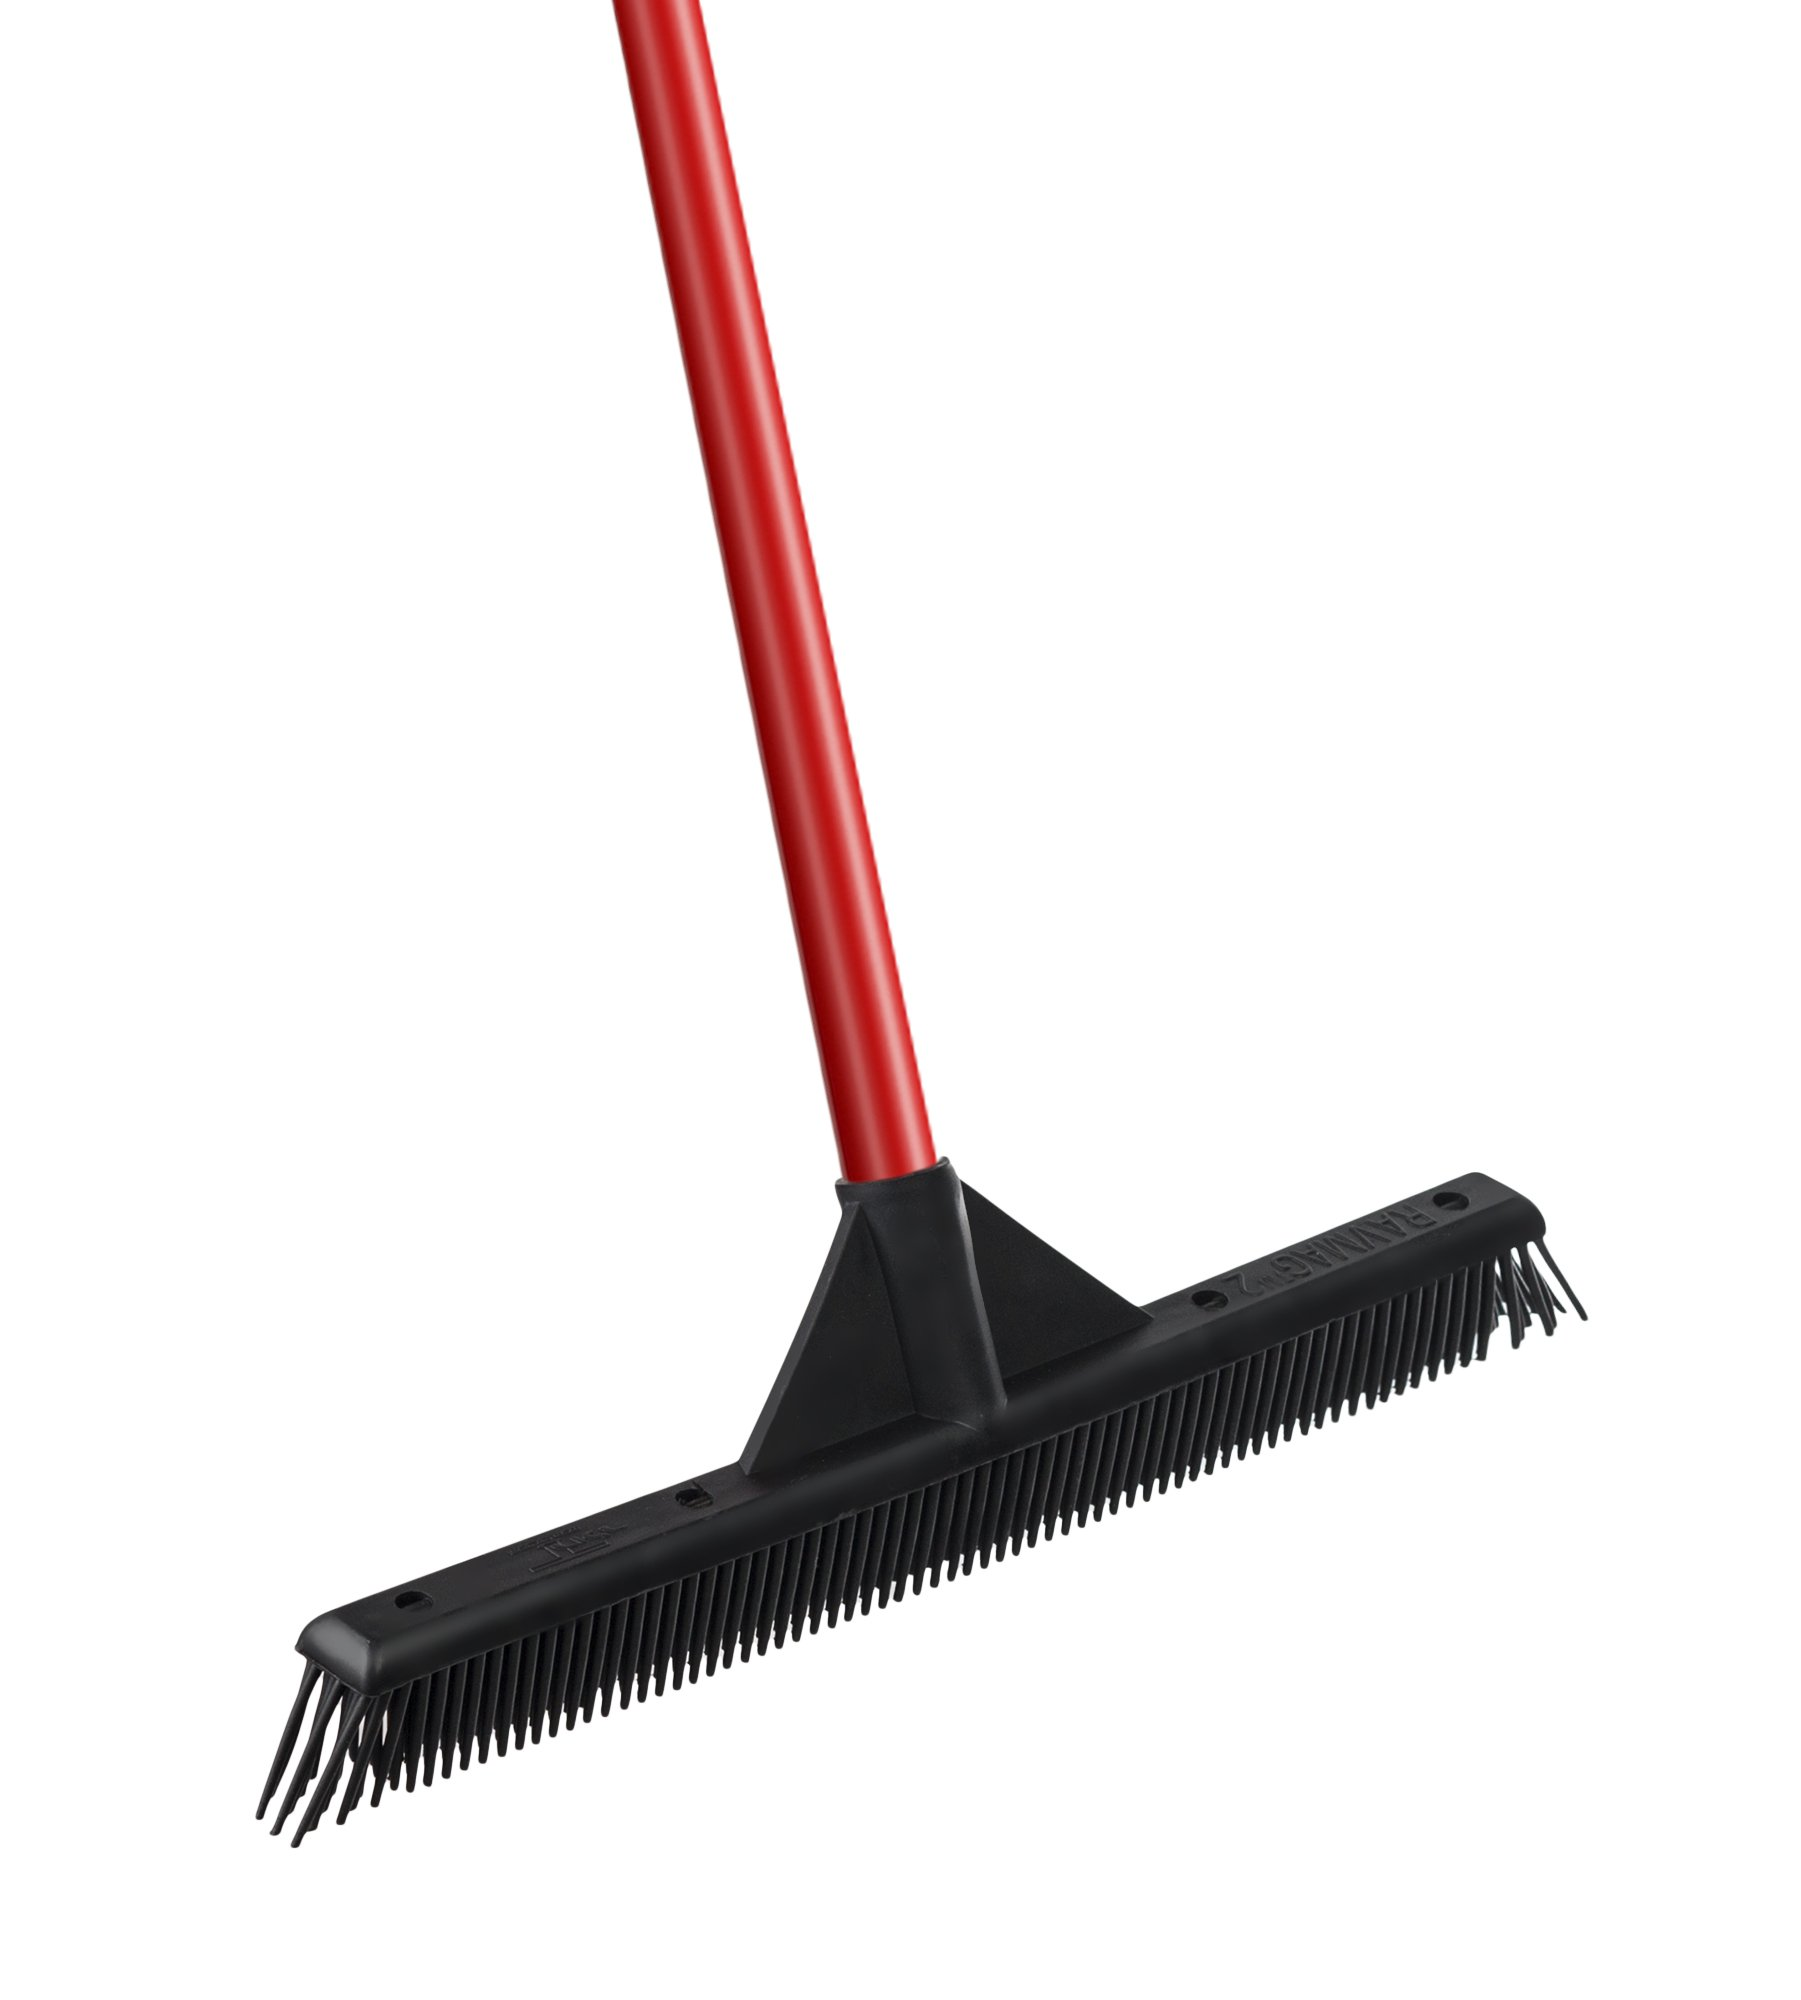 Rubber Broom by Ravmag- Lightweight- Slanted Soft Bristles- Picks up Dust & Hair- Perfect for cleaning hardwood, vinyl carpet cement tile windows- Scratch free!